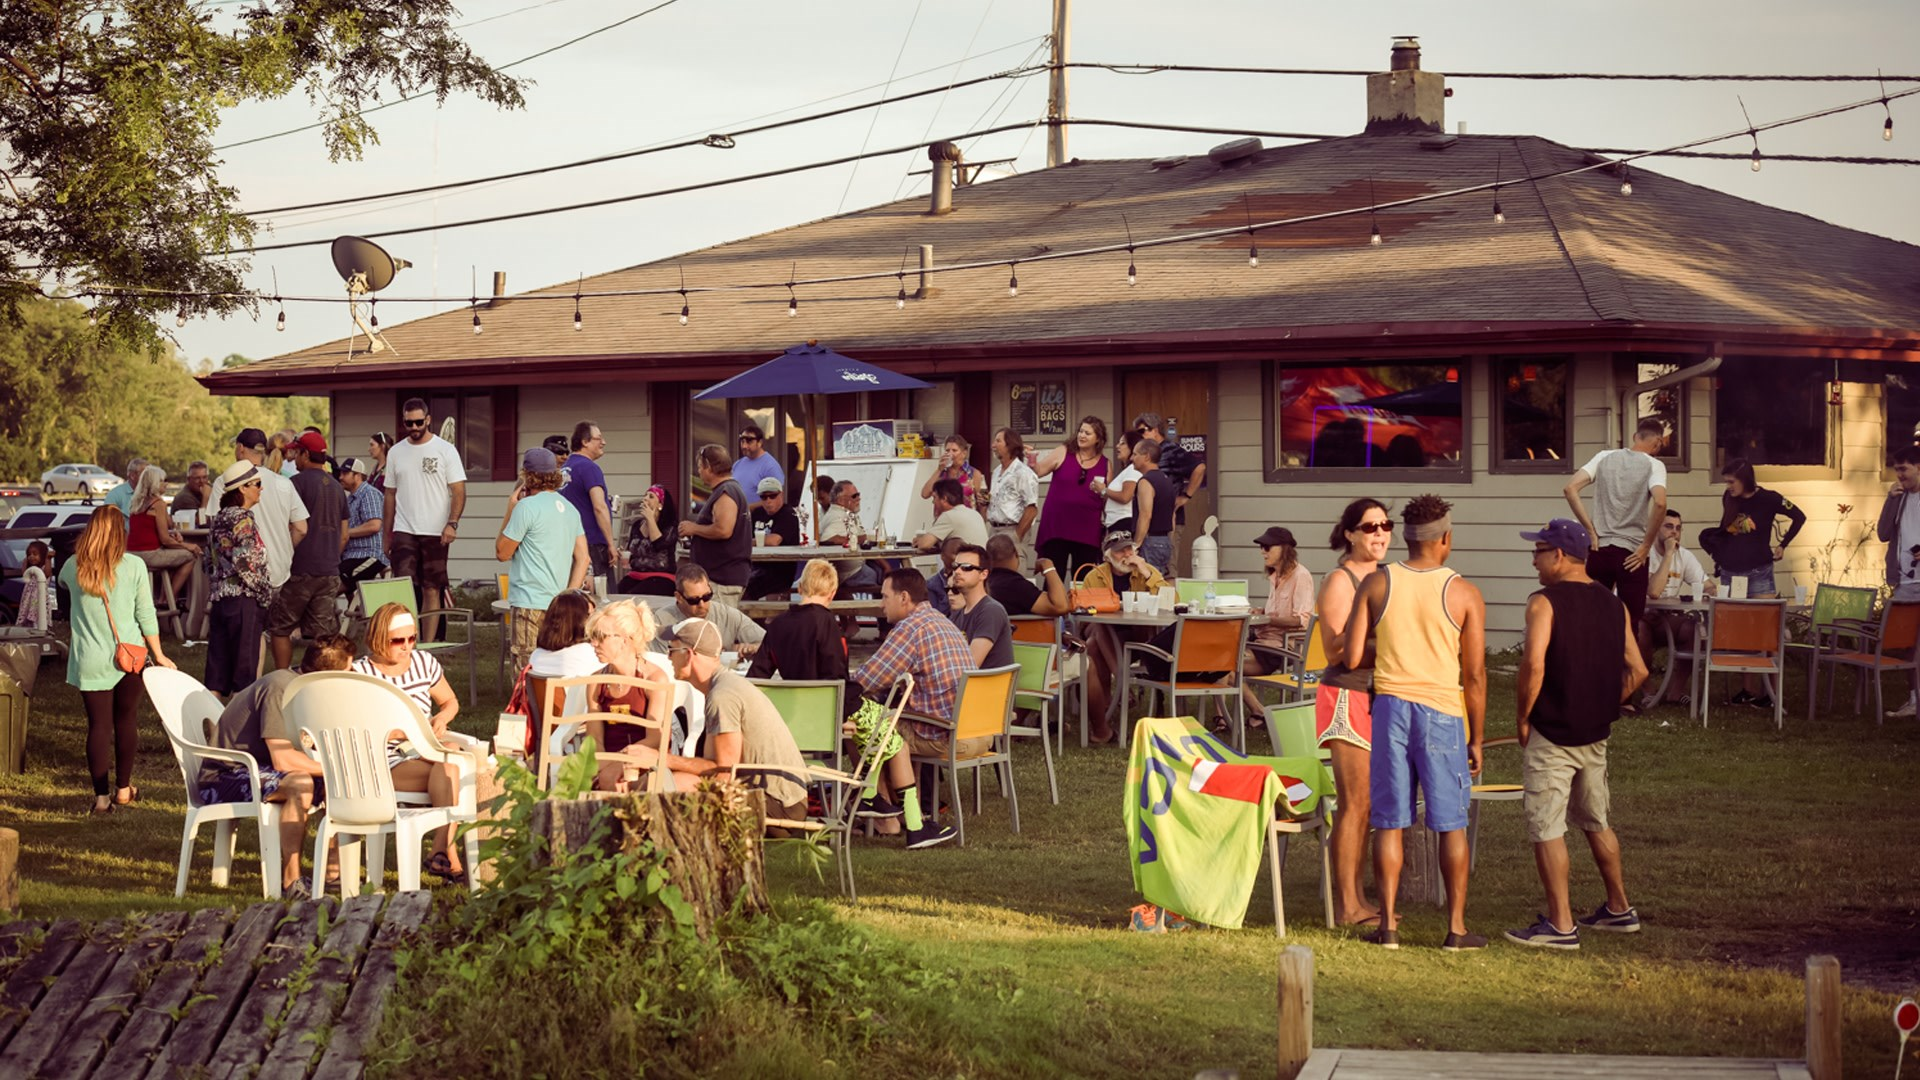 Backyard Bar And Grille - House of Things Wallpaper